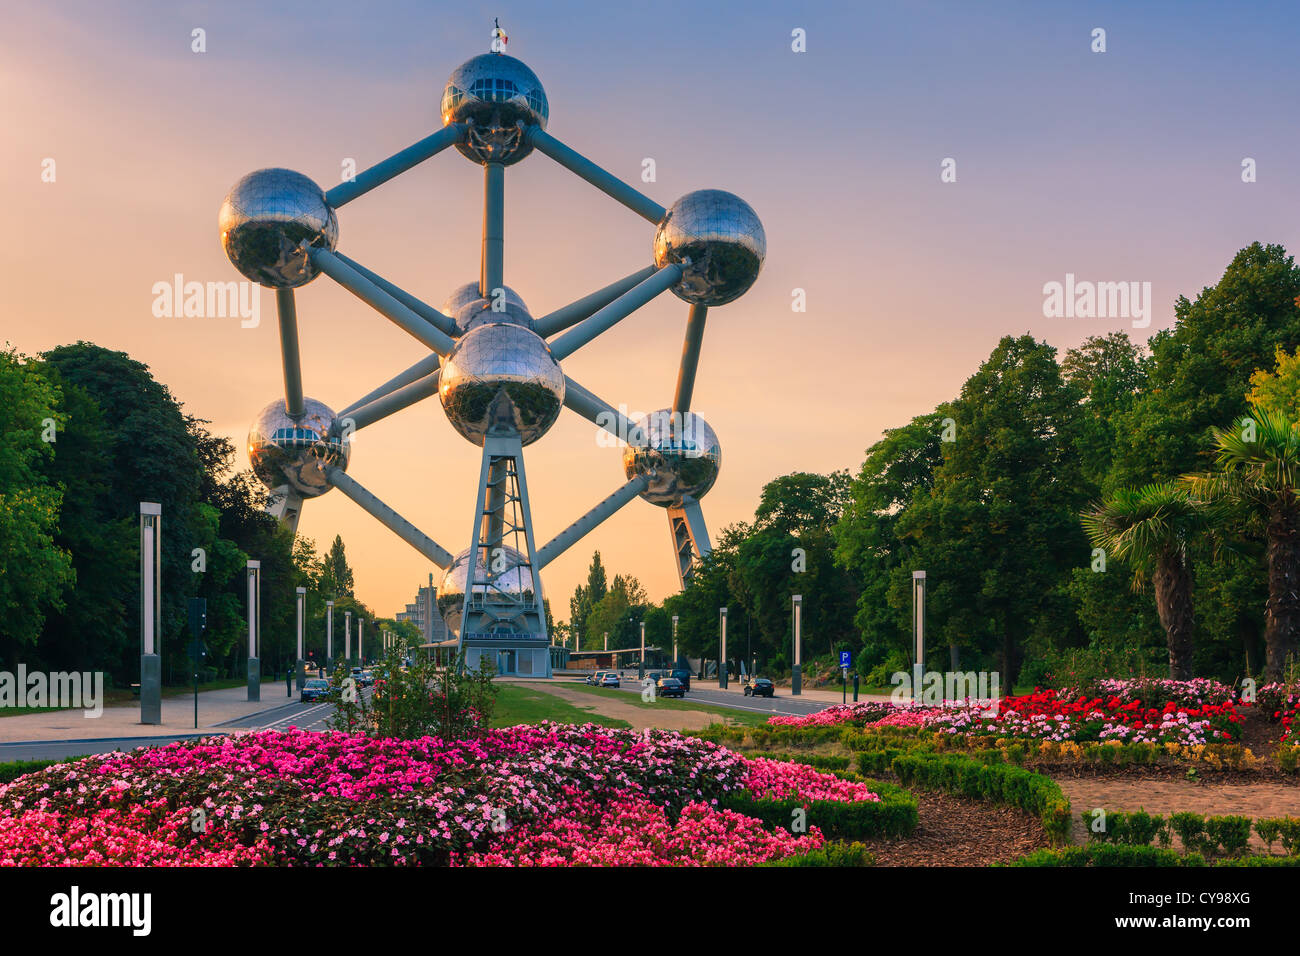 atomium brussels stockfotos atomium brussels bilder alamy. Black Bedroom Furniture Sets. Home Design Ideas